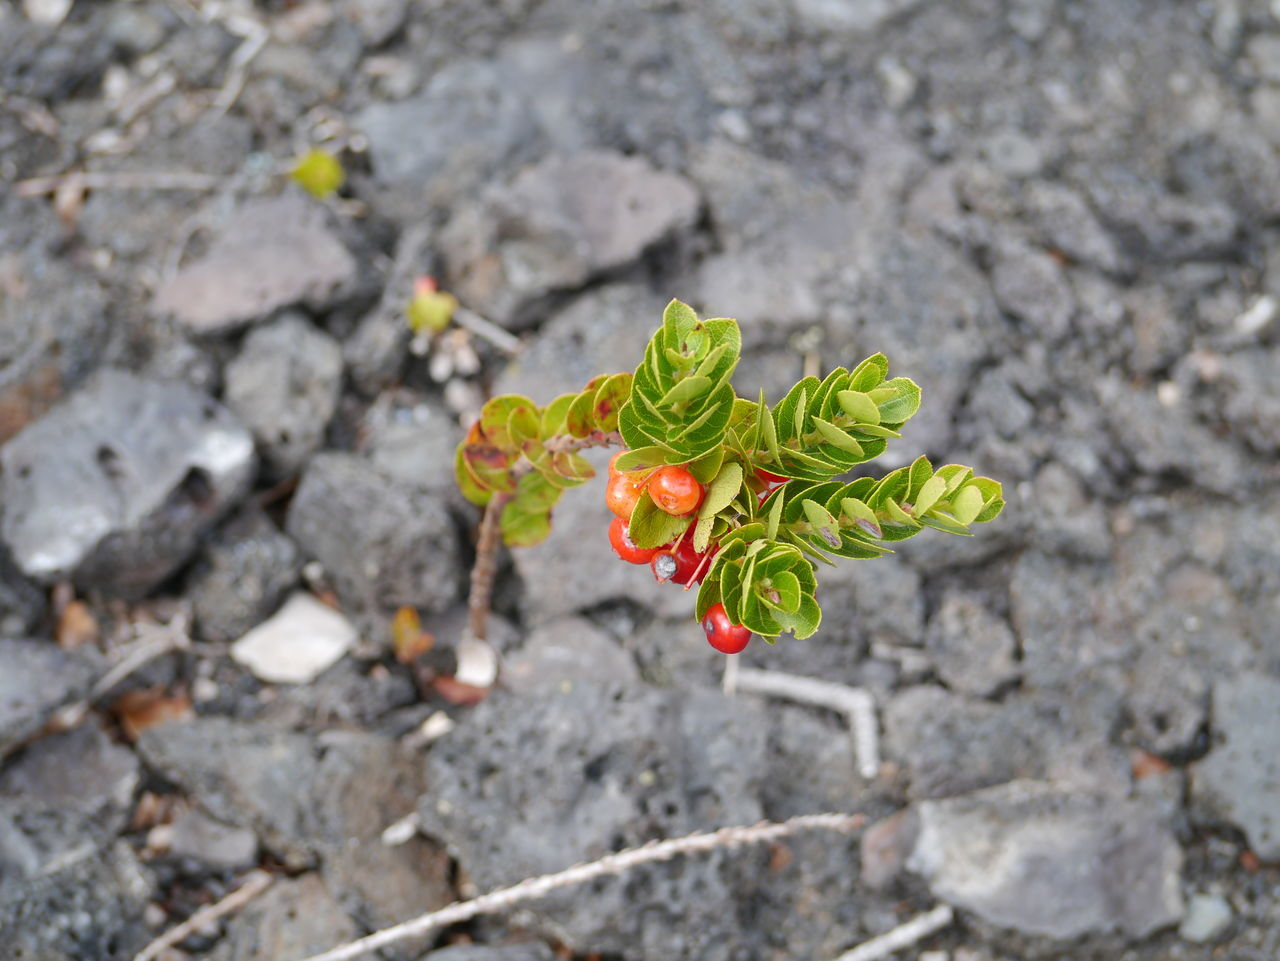 Beauty In Nature Close-up Day Focus On Foreground Growing Hawaii Hawaii Volcano Trail Hawaii Volcanoes National Park Nature No People Outdoors Selective Focus Stone Tranquility Volcano Rock Volcano Stone Market Bestsellers 2017